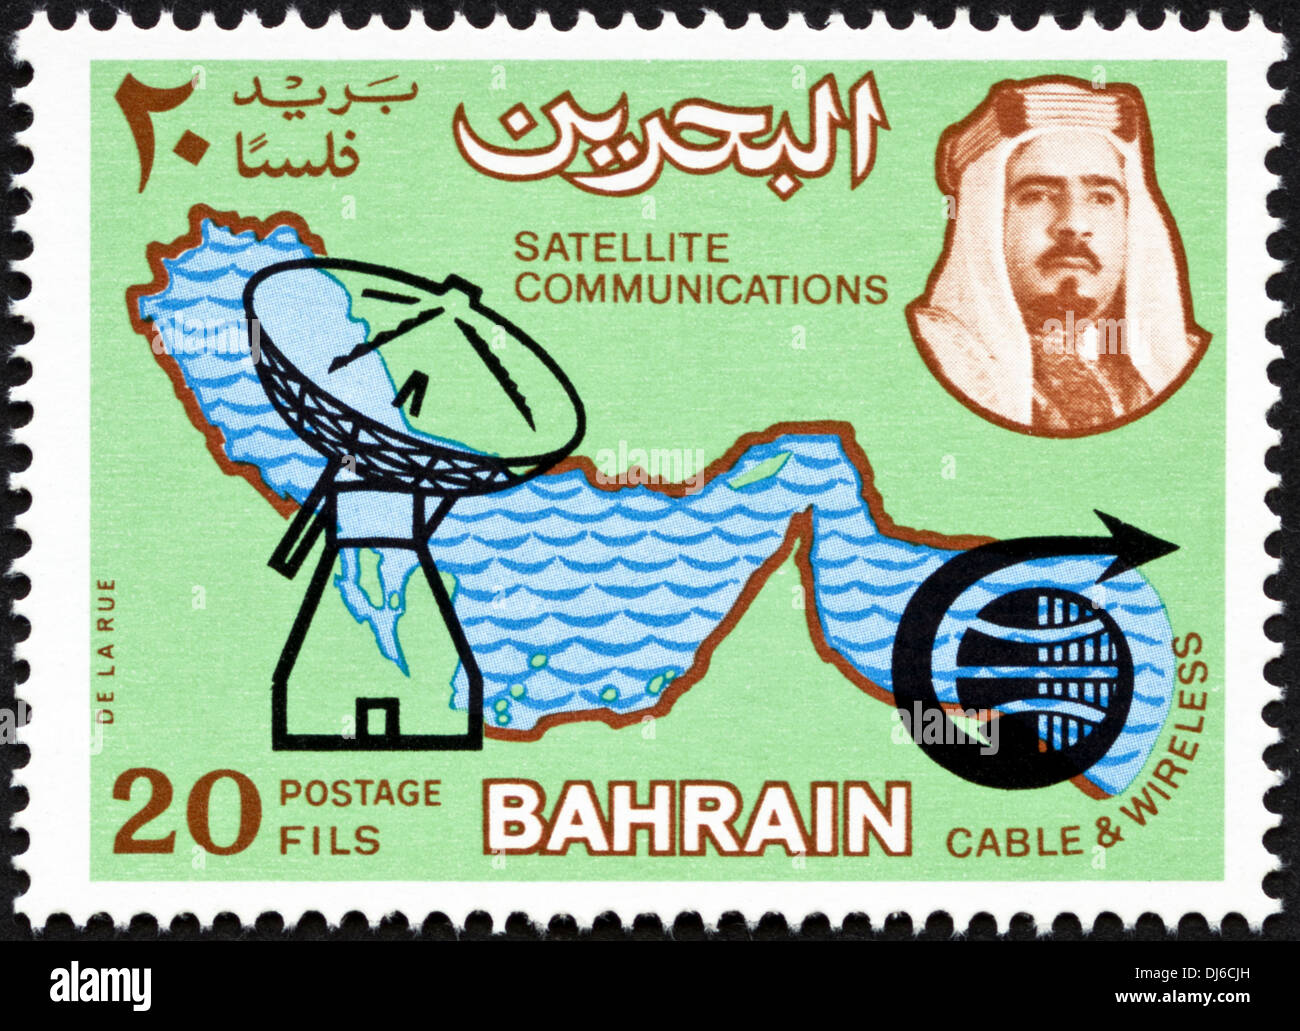 postage stamp Bahrain 20 Fils featuring Cable & Wireless Satellite Communications dated 1967 - Stock Image